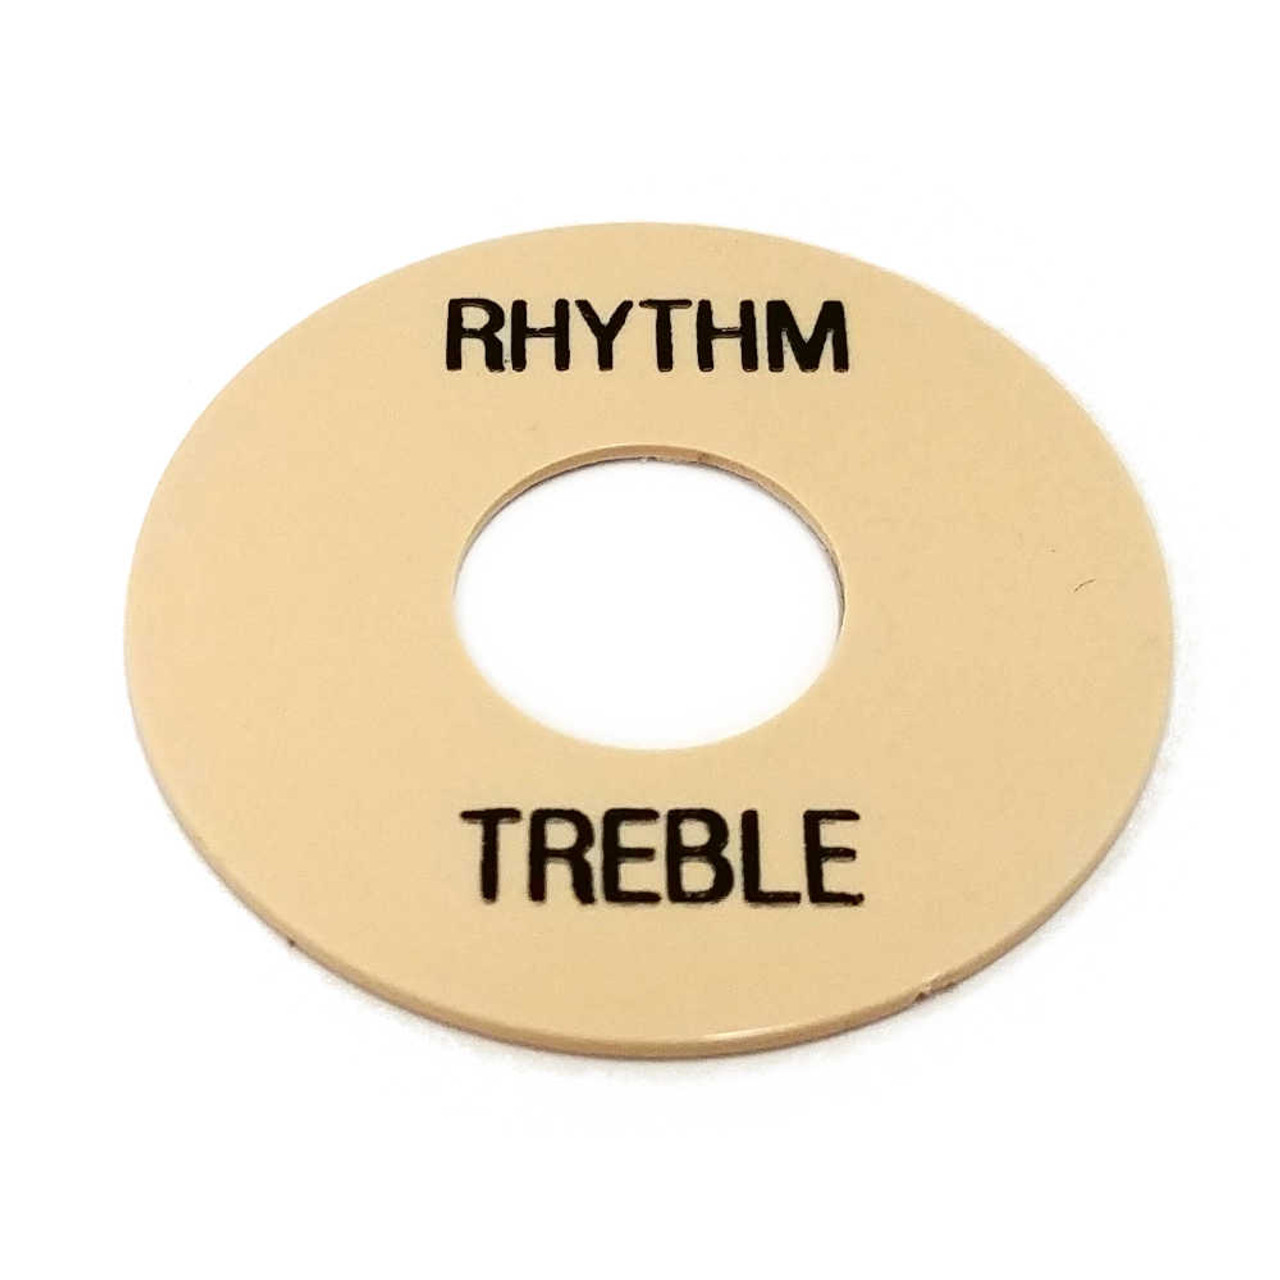 Rhythm/Treble Ring - Cream /w Black Letters